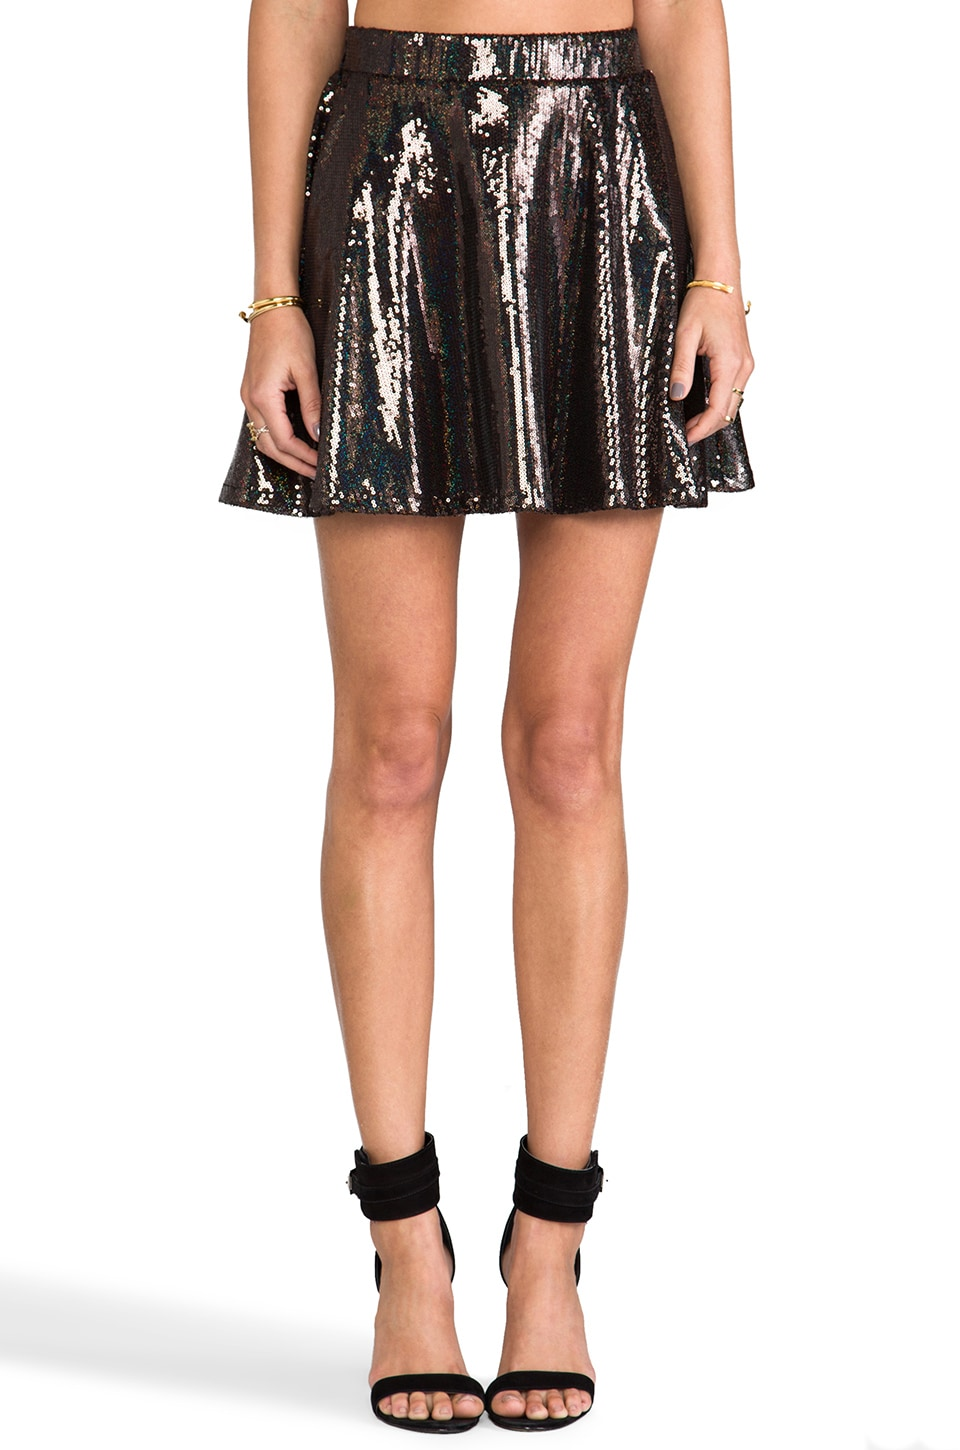 Naven Circle Mini Skirt in Sequin/Black